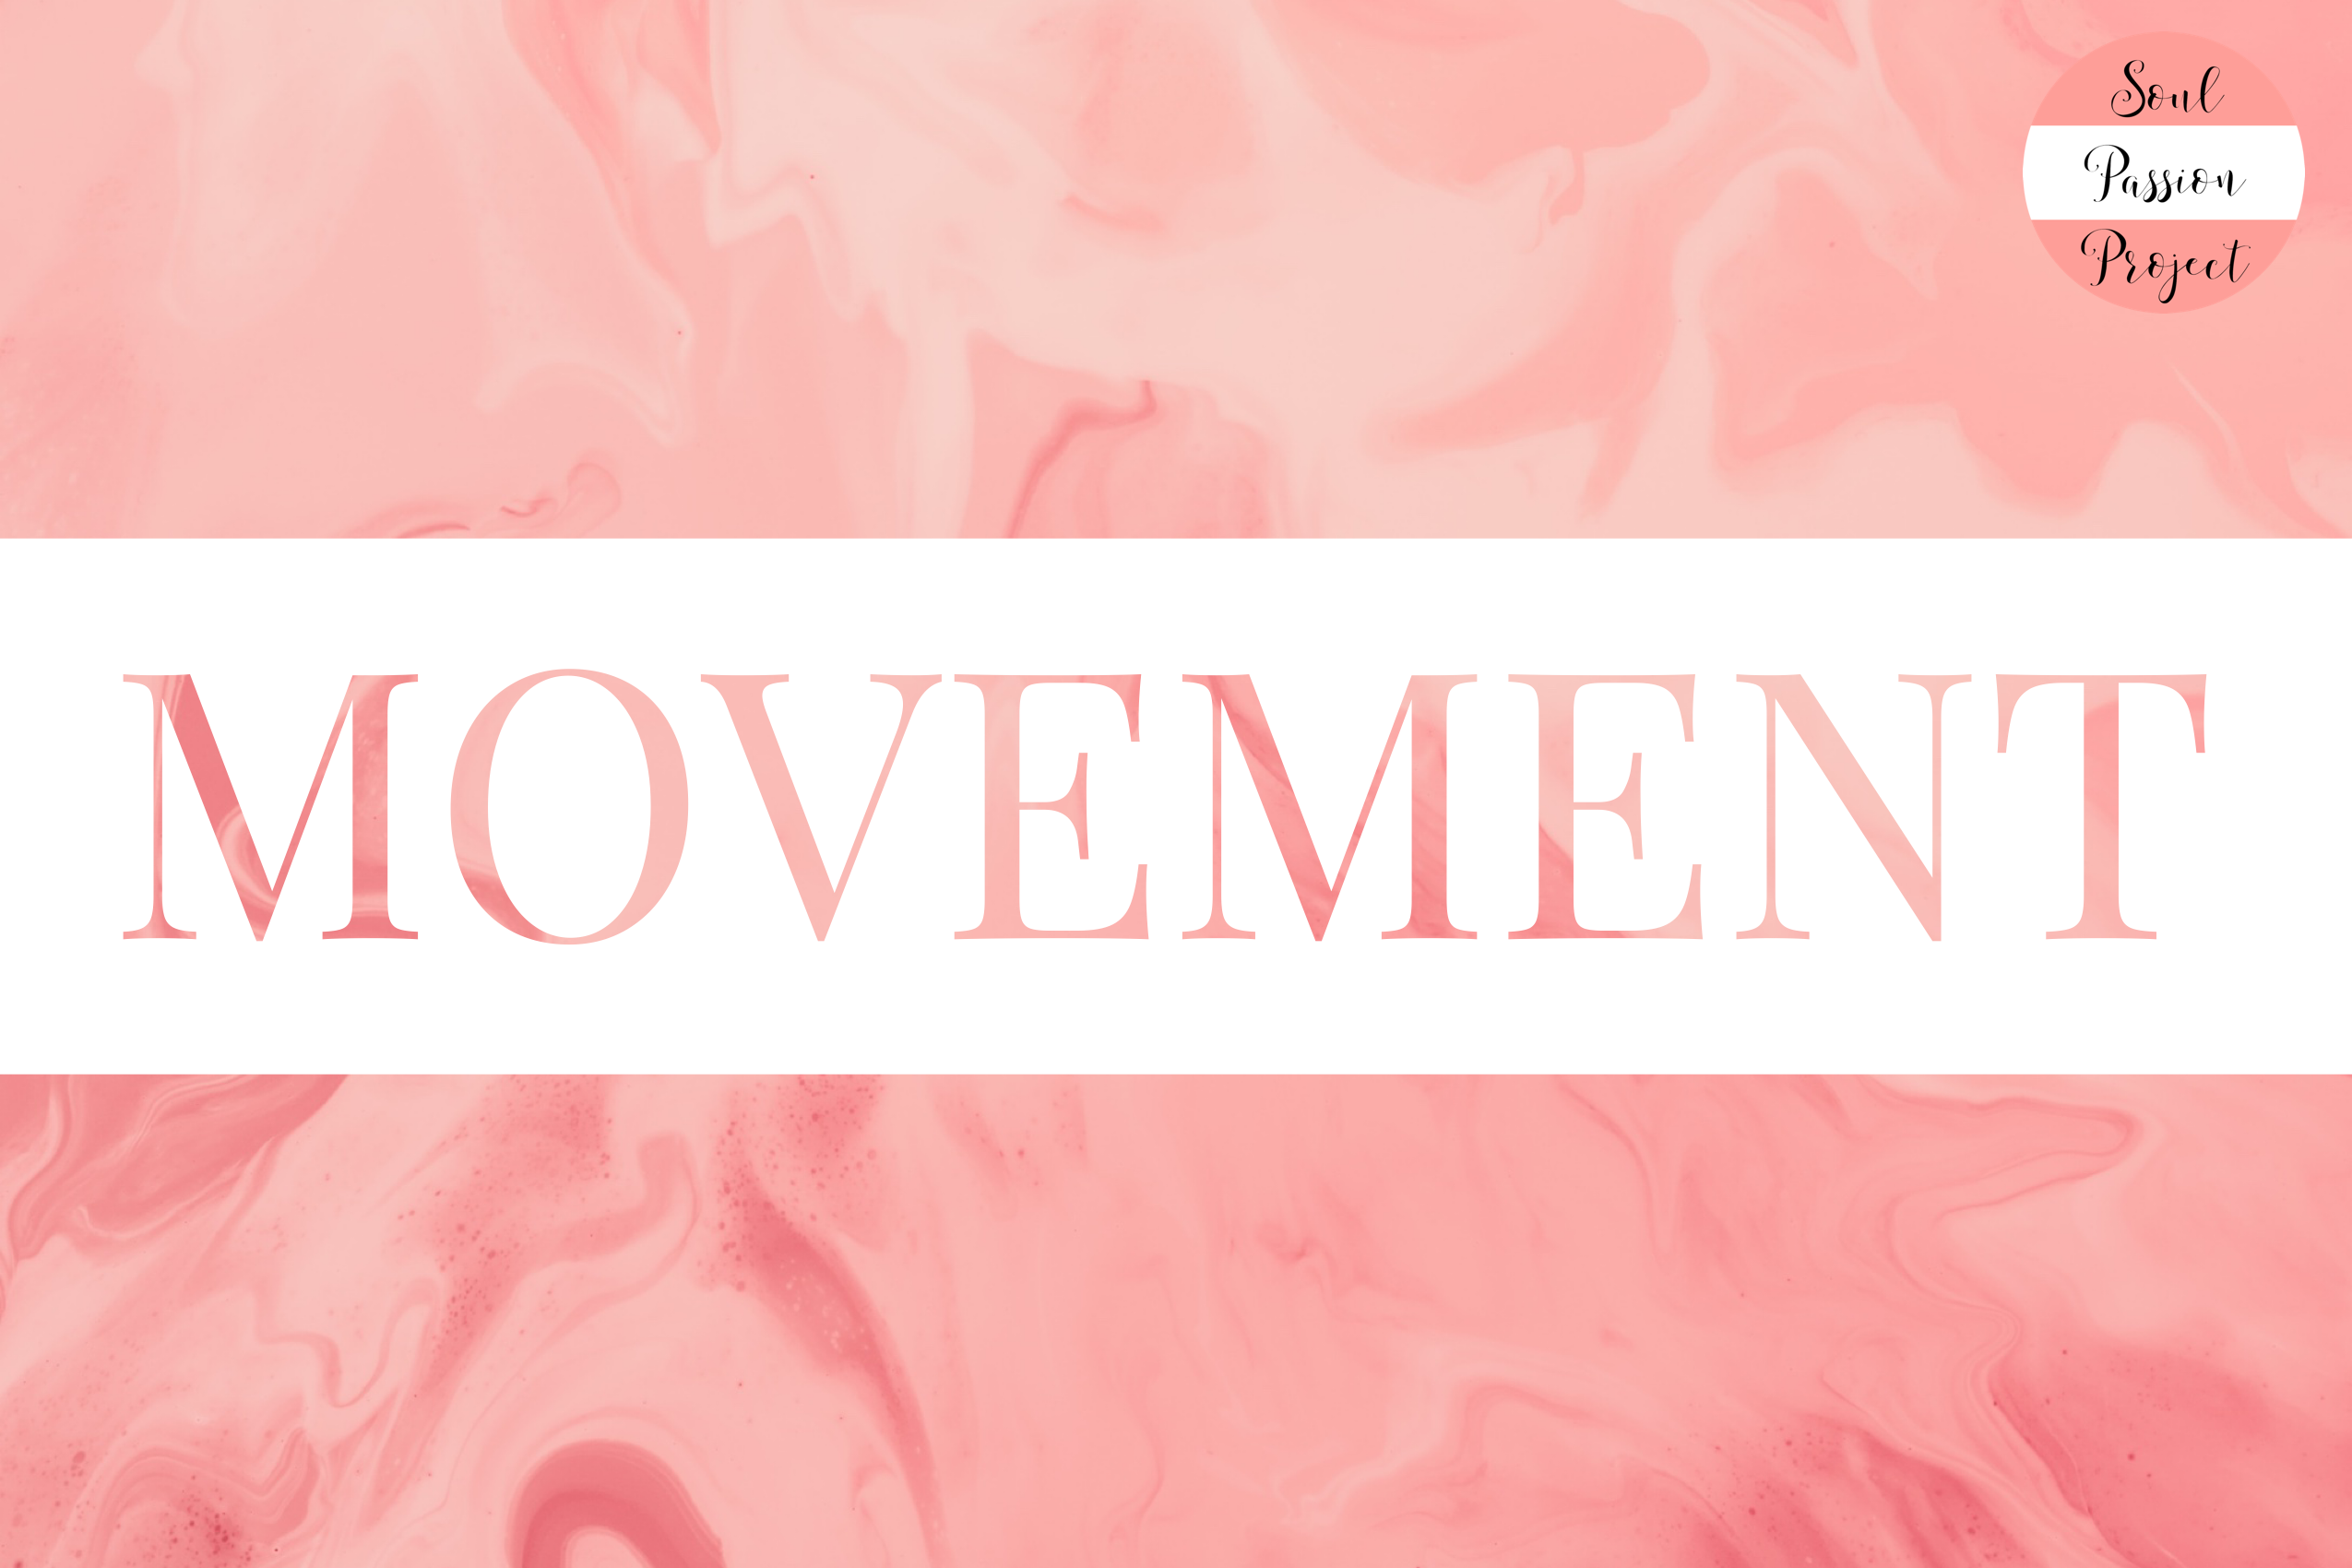 Image is a rectangle with a background of swirly light pink with a white banner running through the middle with the word MOVEMENT in the swirly pink color. The Soul Passion Project Logo is in the upper right corner of the image.